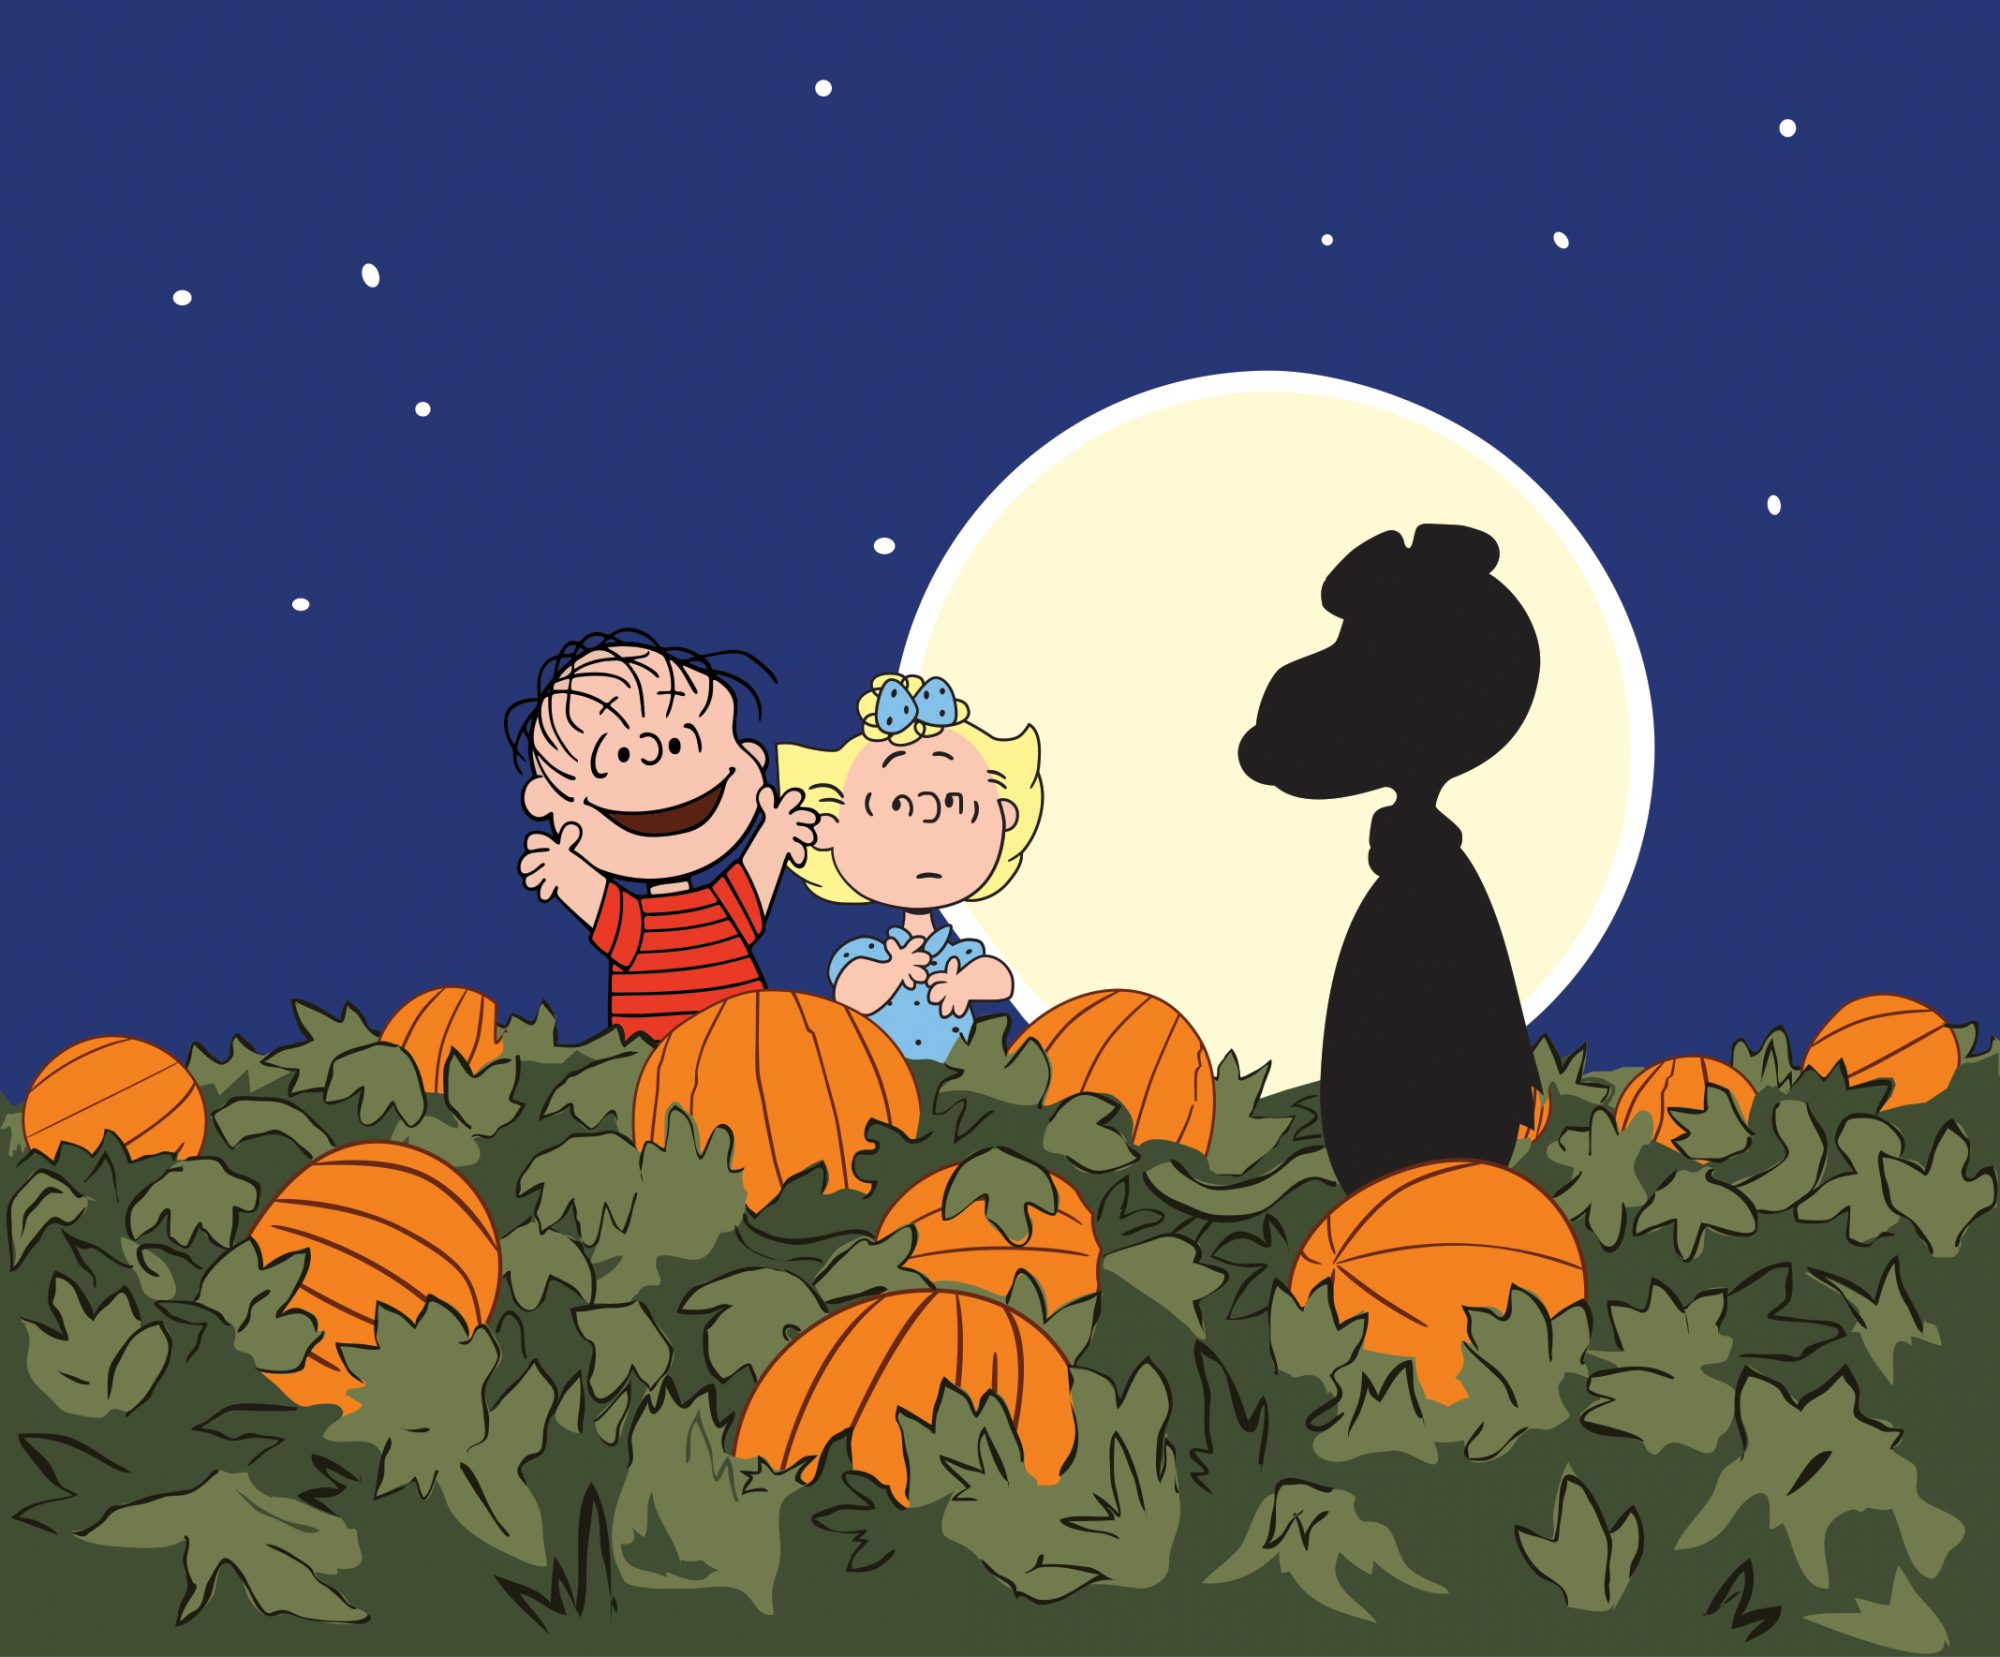 Scene from Charlie Brown and the Great Pumpkin